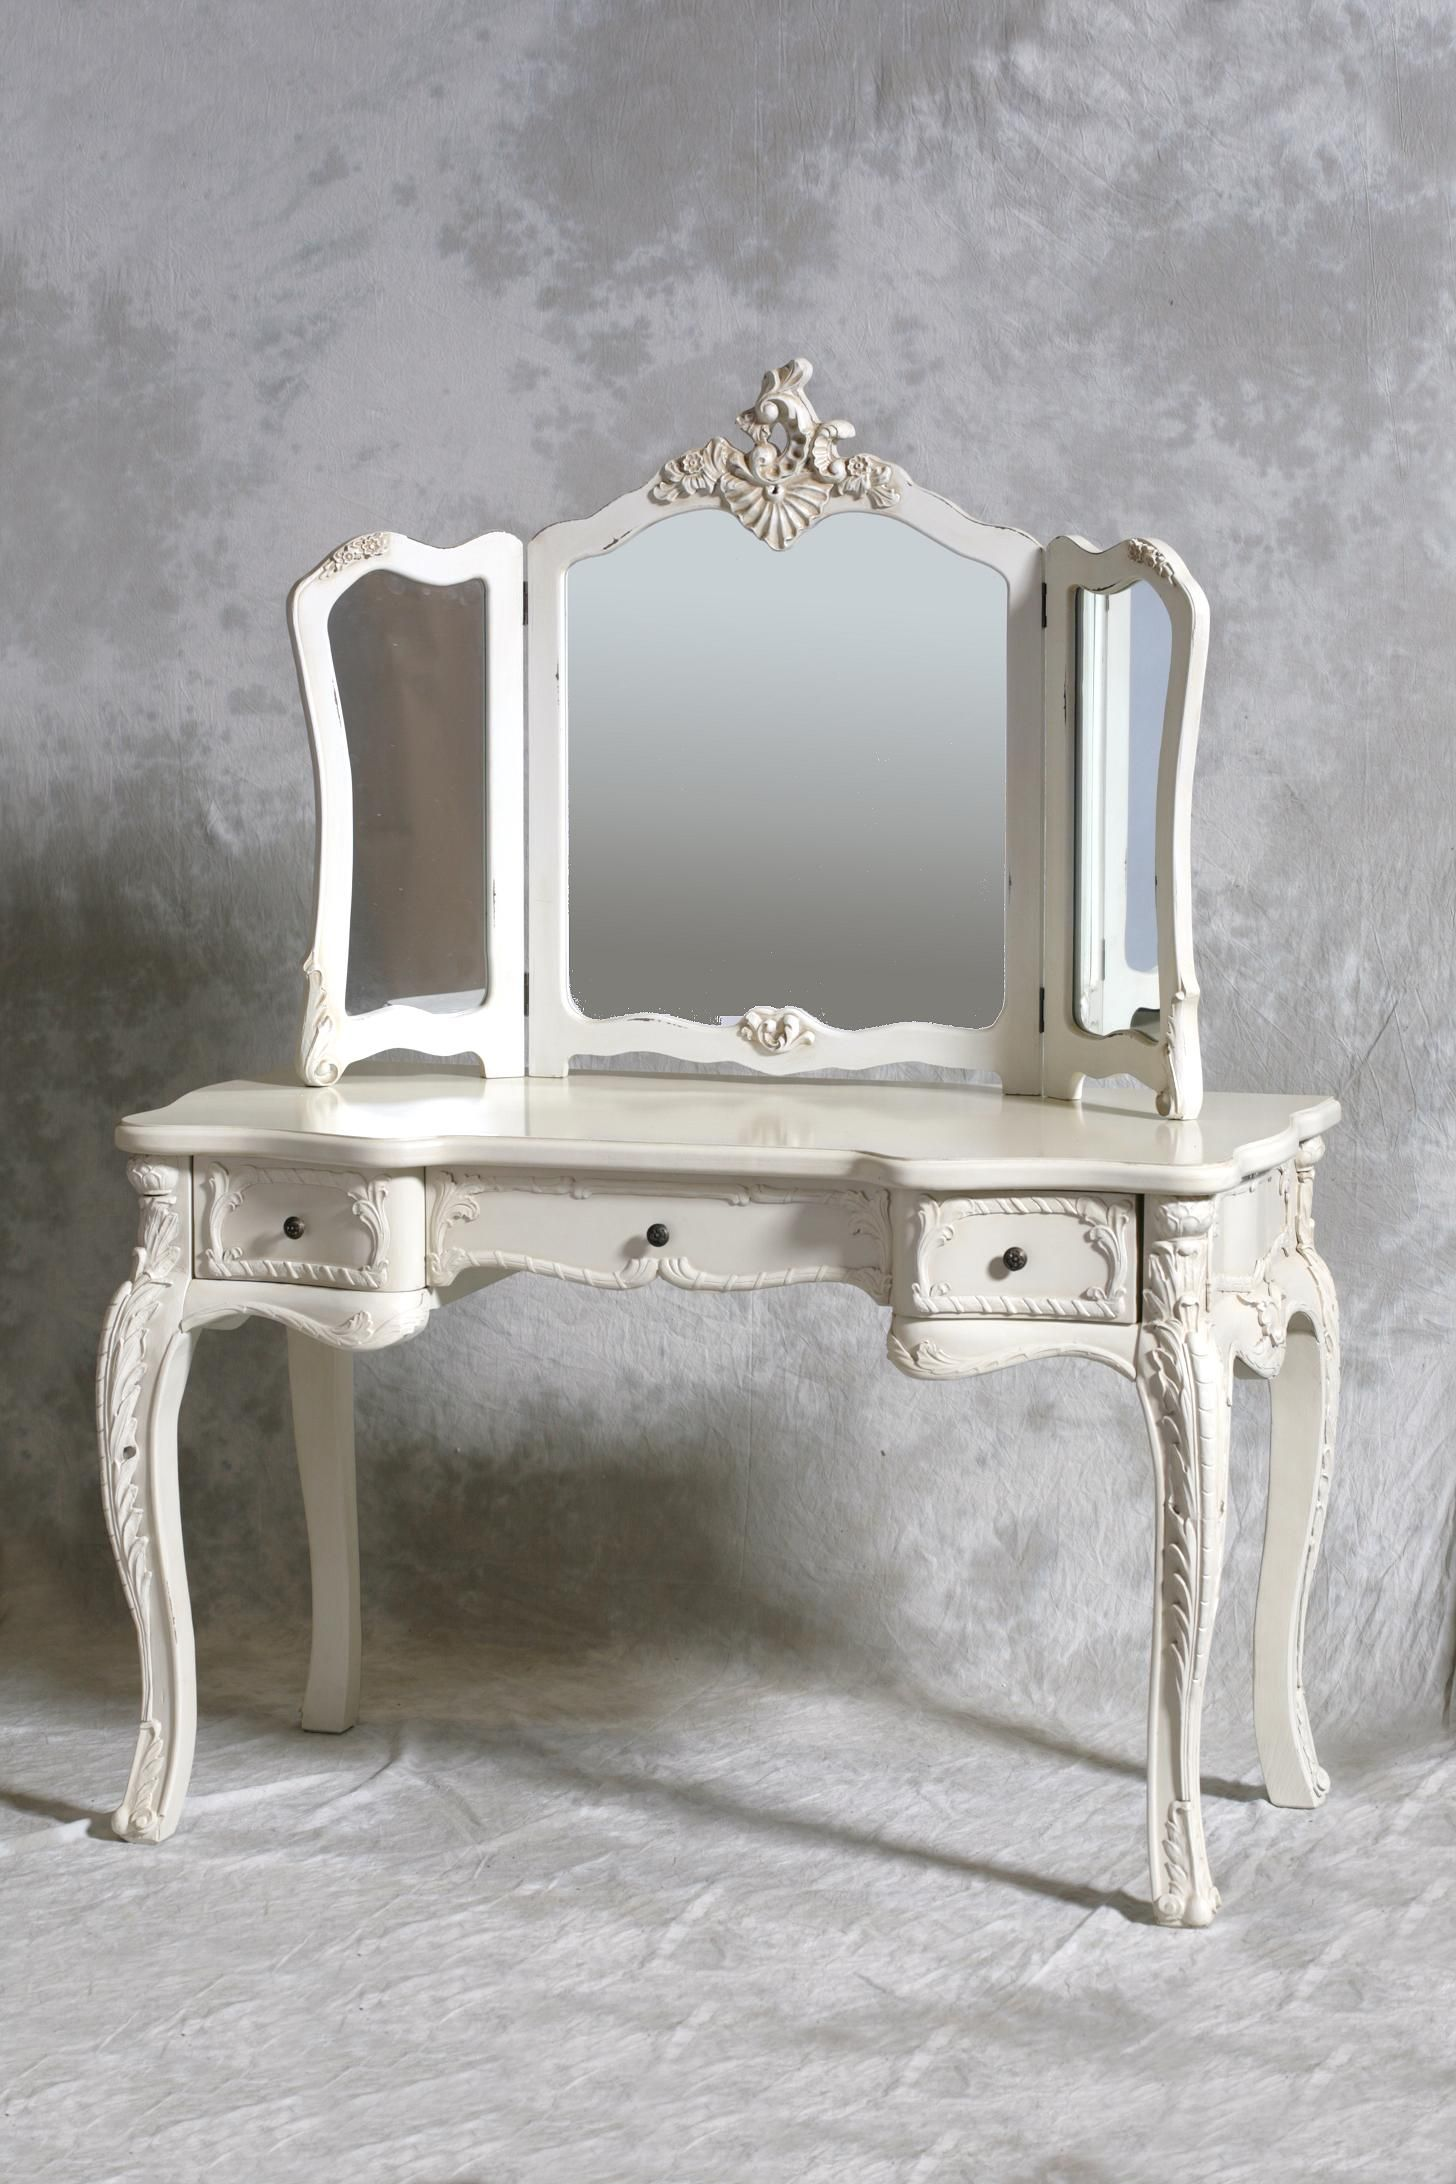 Antique dressing table with mirror - Mirror A Chateau French Antique Style Cream Dressing Table